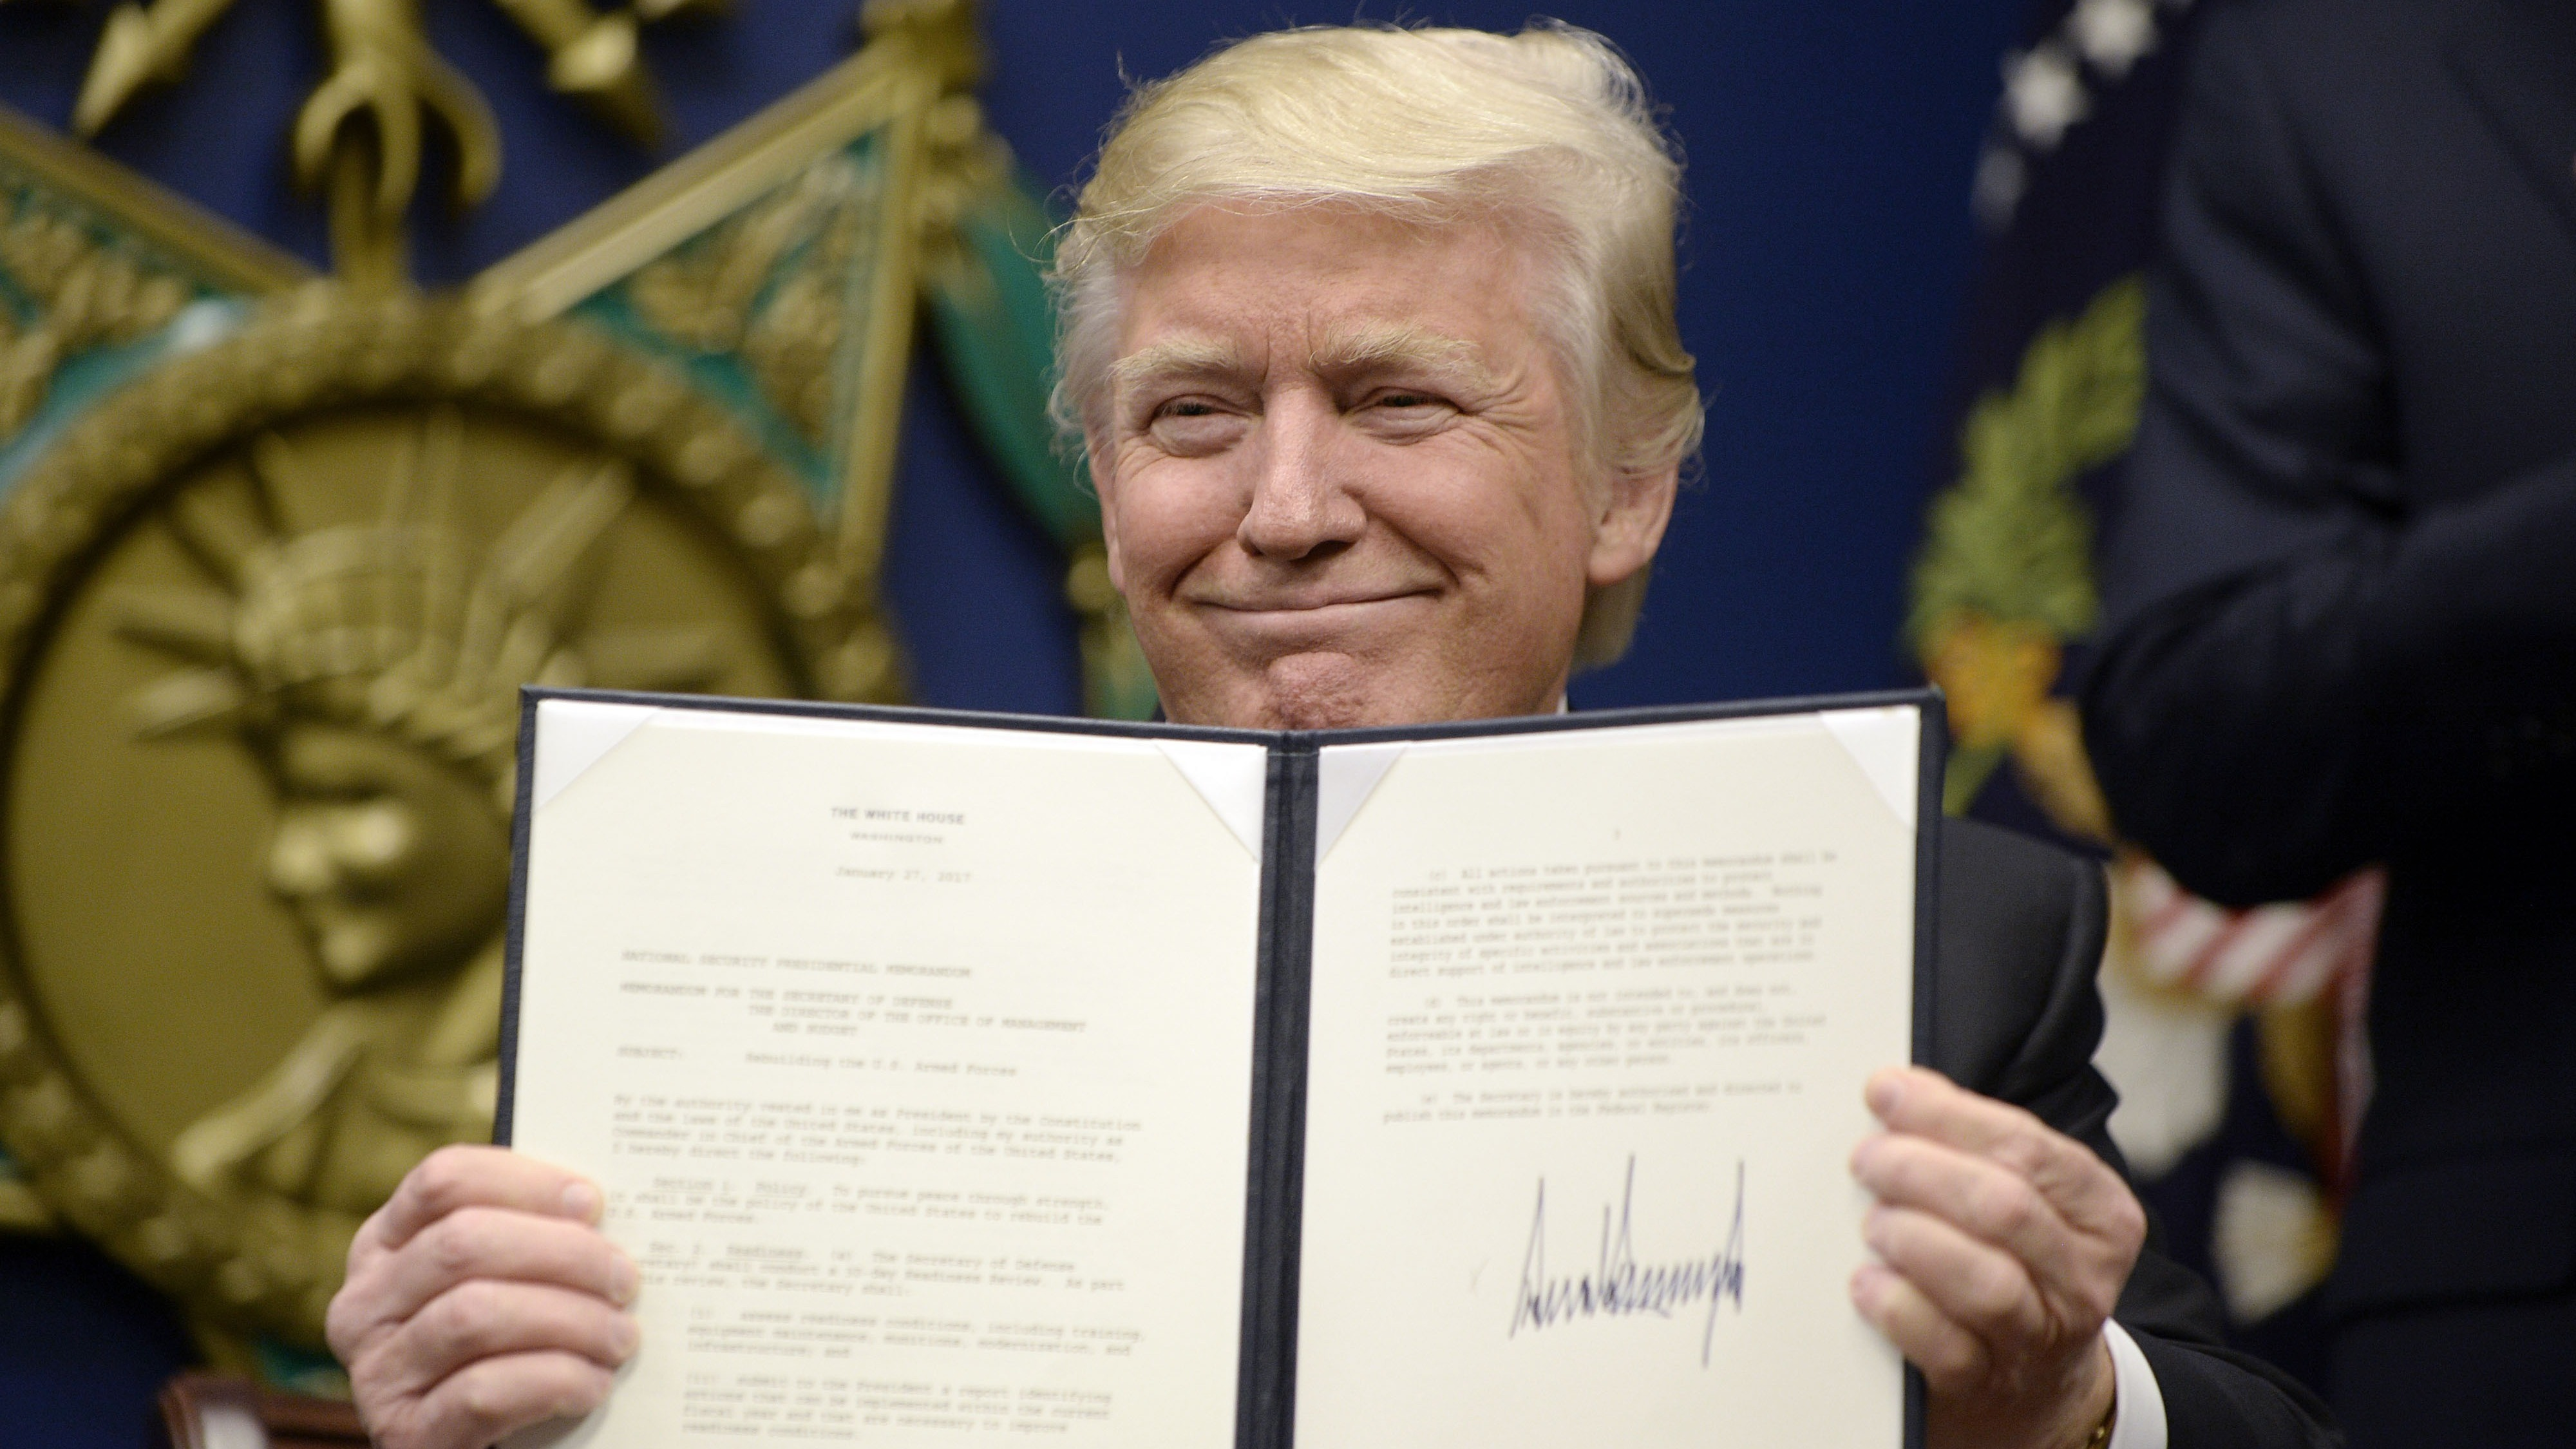 3 Things To Consider About The Politics Of Trump's Immigration Executive Order